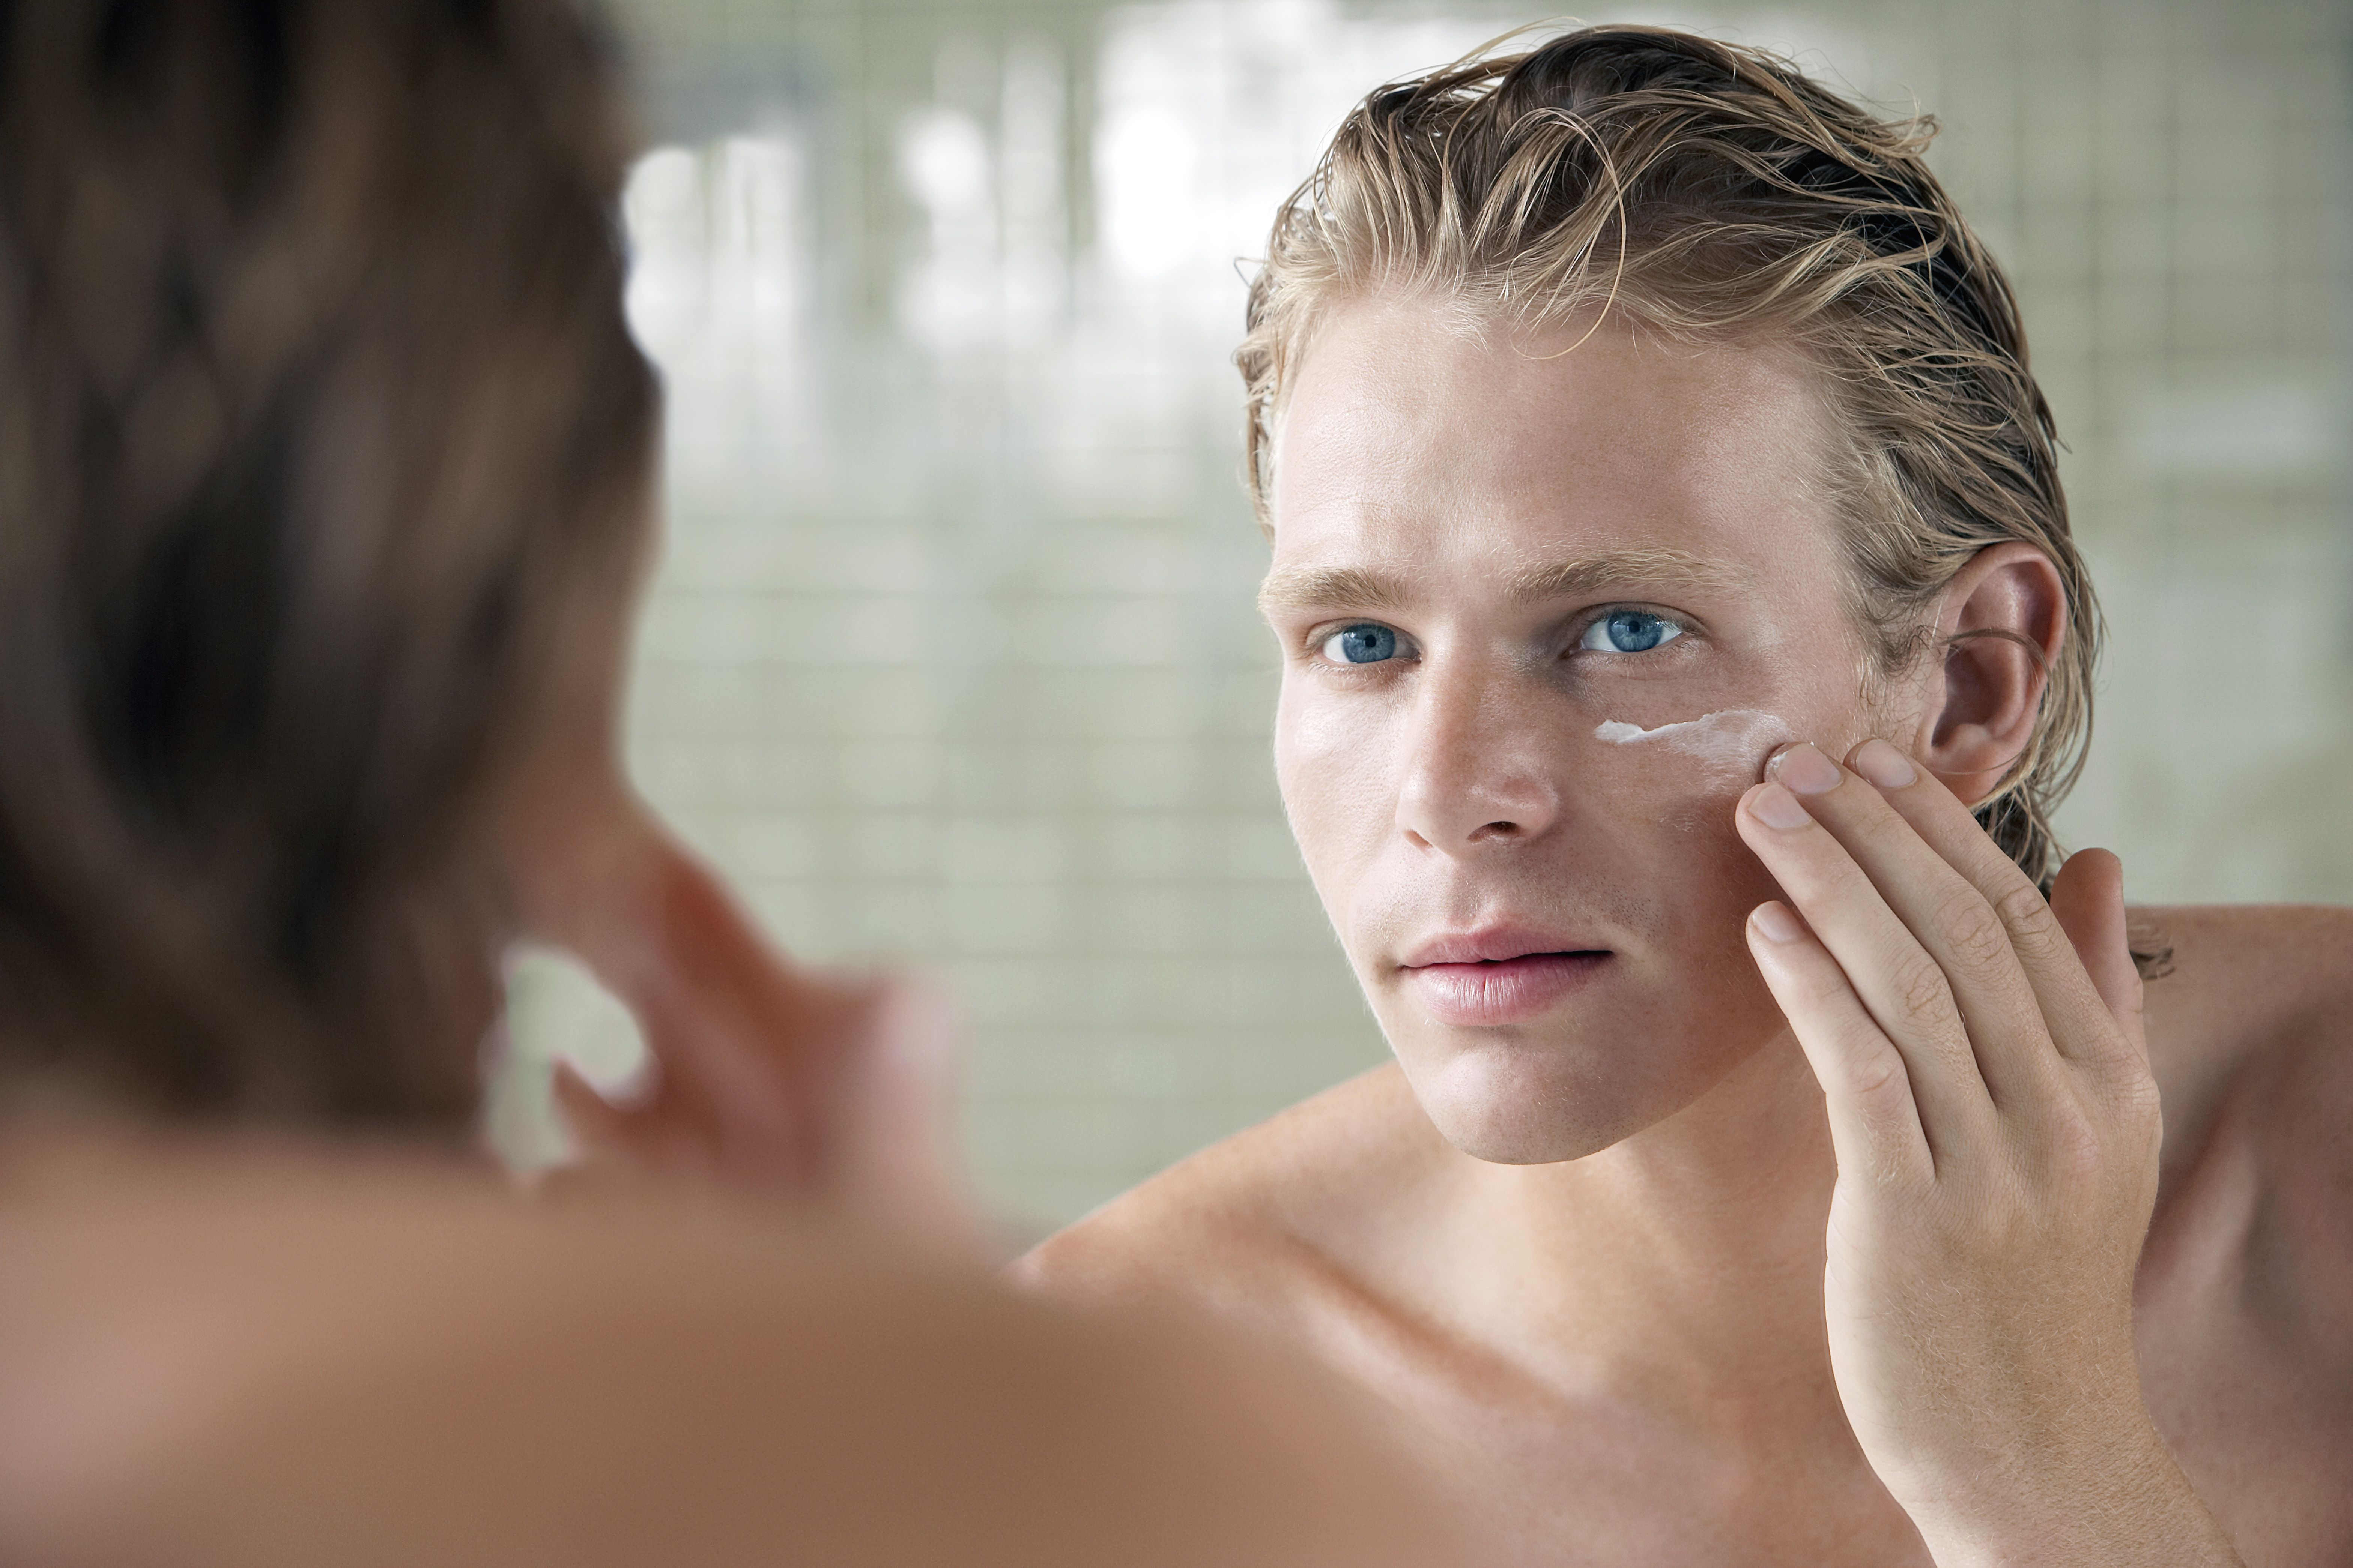 11 Best Makeup Products for Men 11 - Top Concealer and Brow Gels